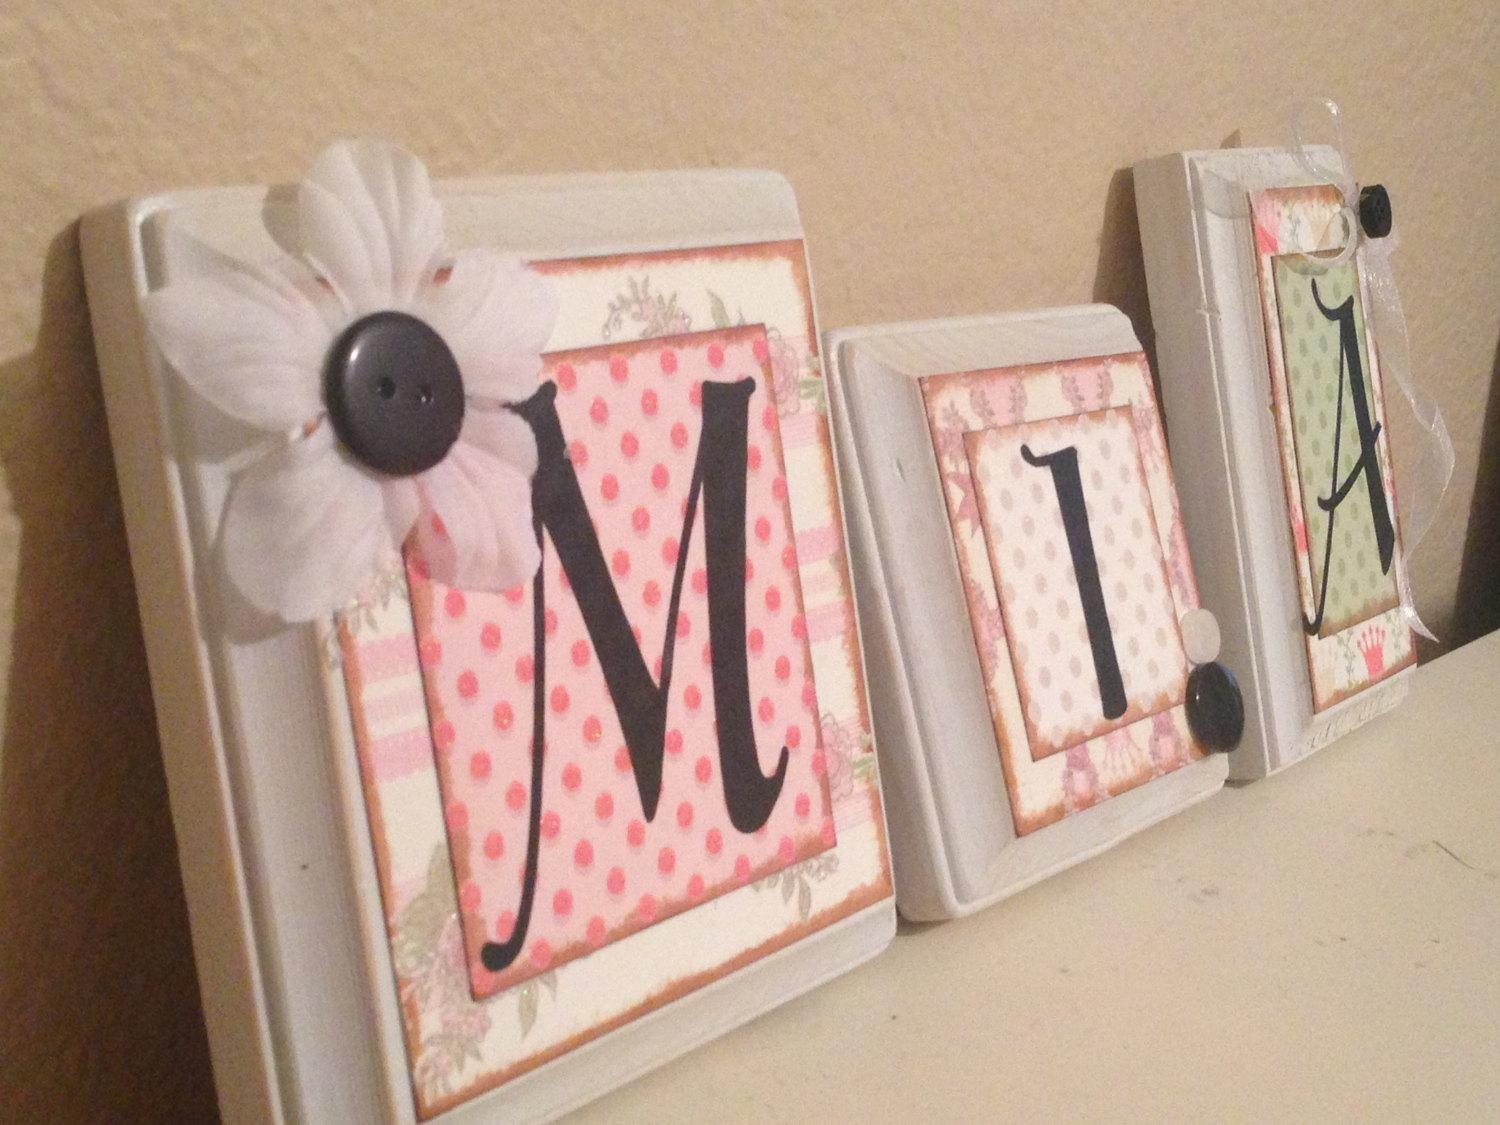 Wall Art Designs: Personalized Name Wall Art Letters Decorative With Decorative Metal Letters Wall Art (Image 10 of 20)